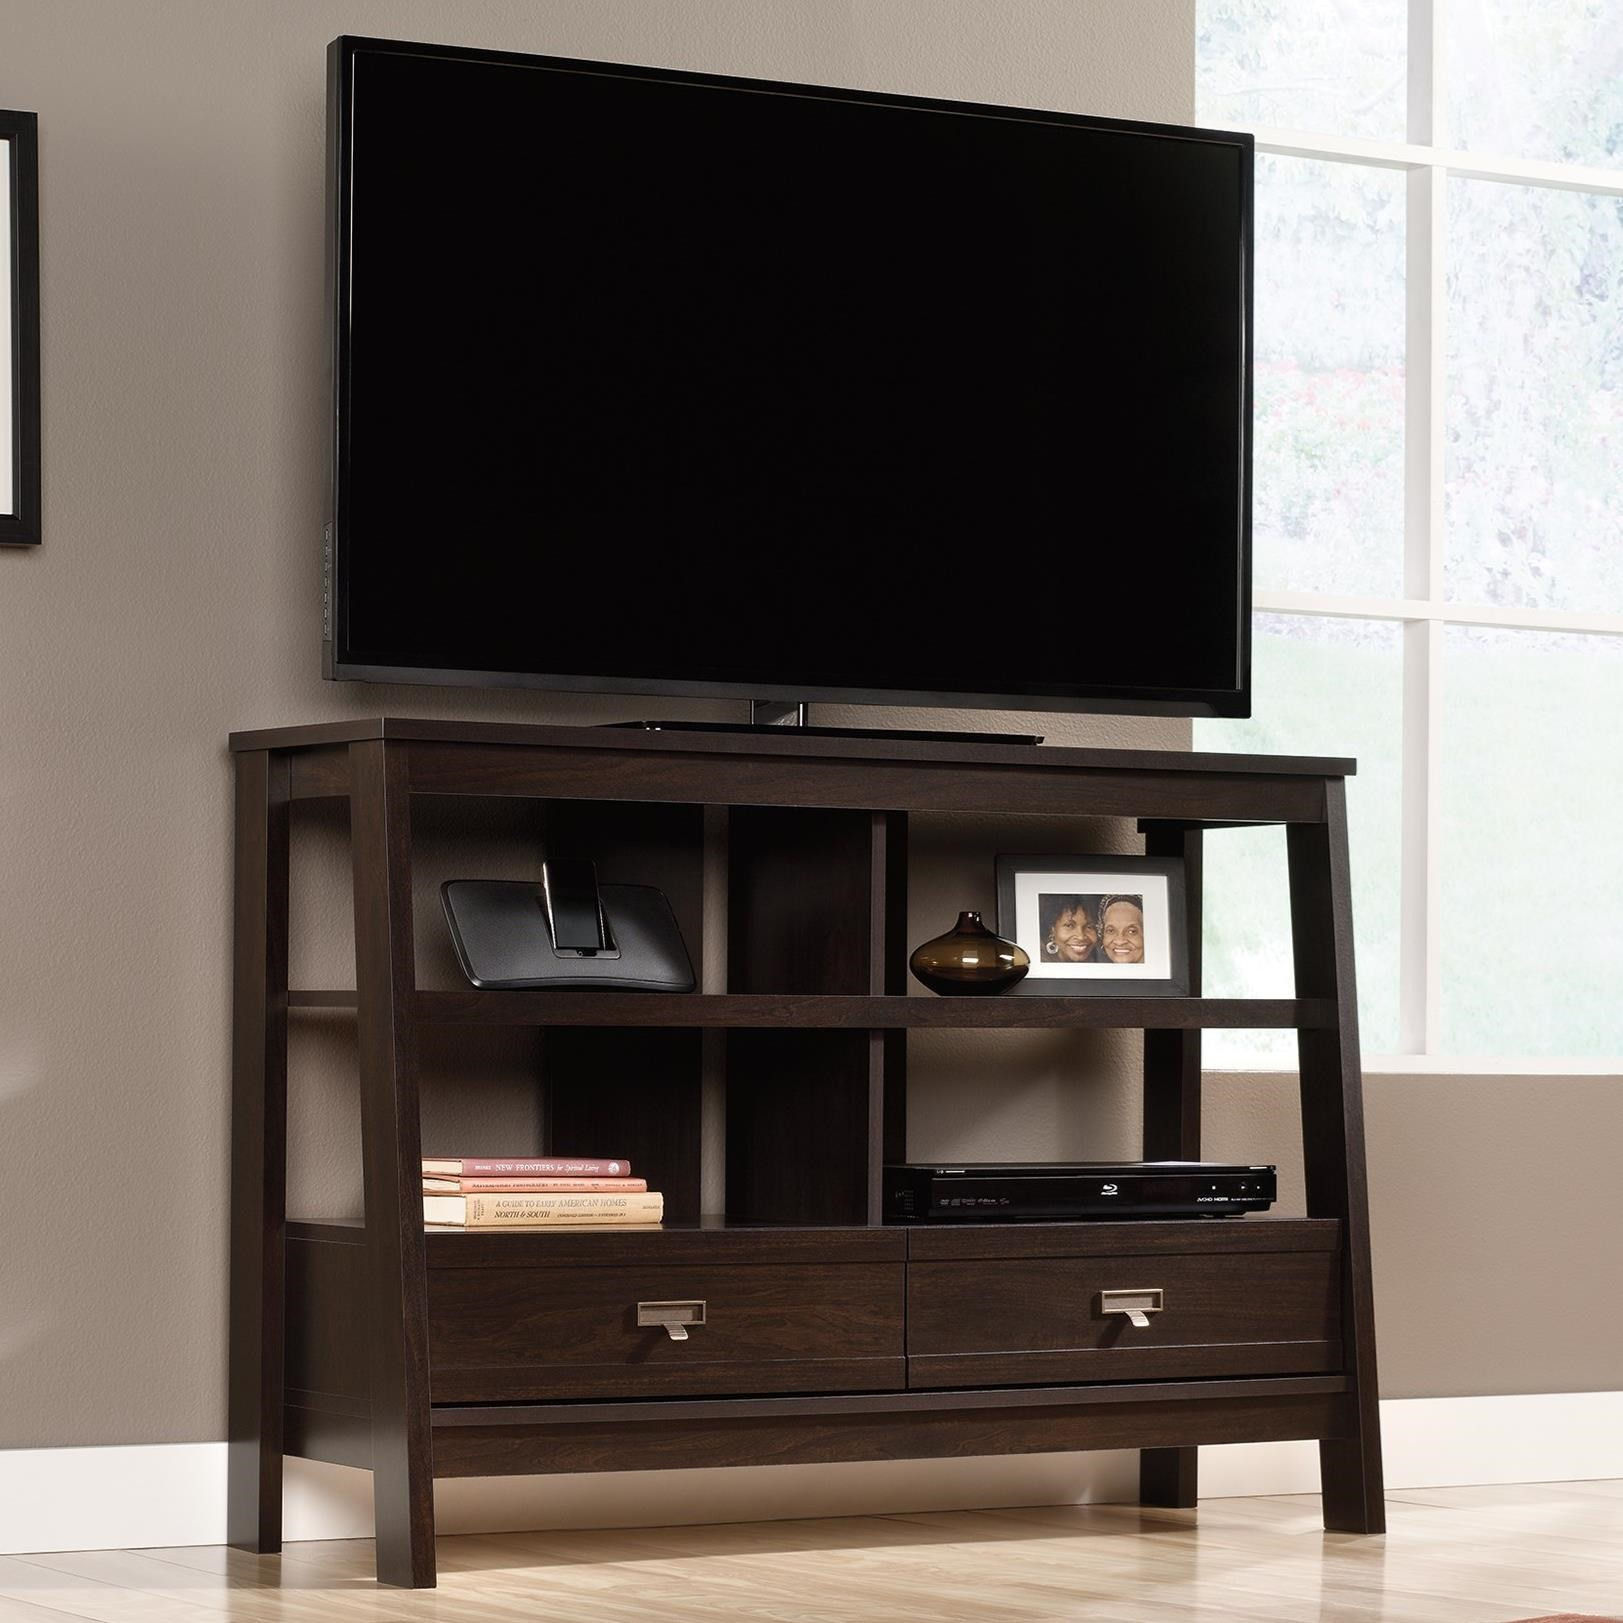 Select Anywhere Console by Sauder at Westrich Furniture & Appliances